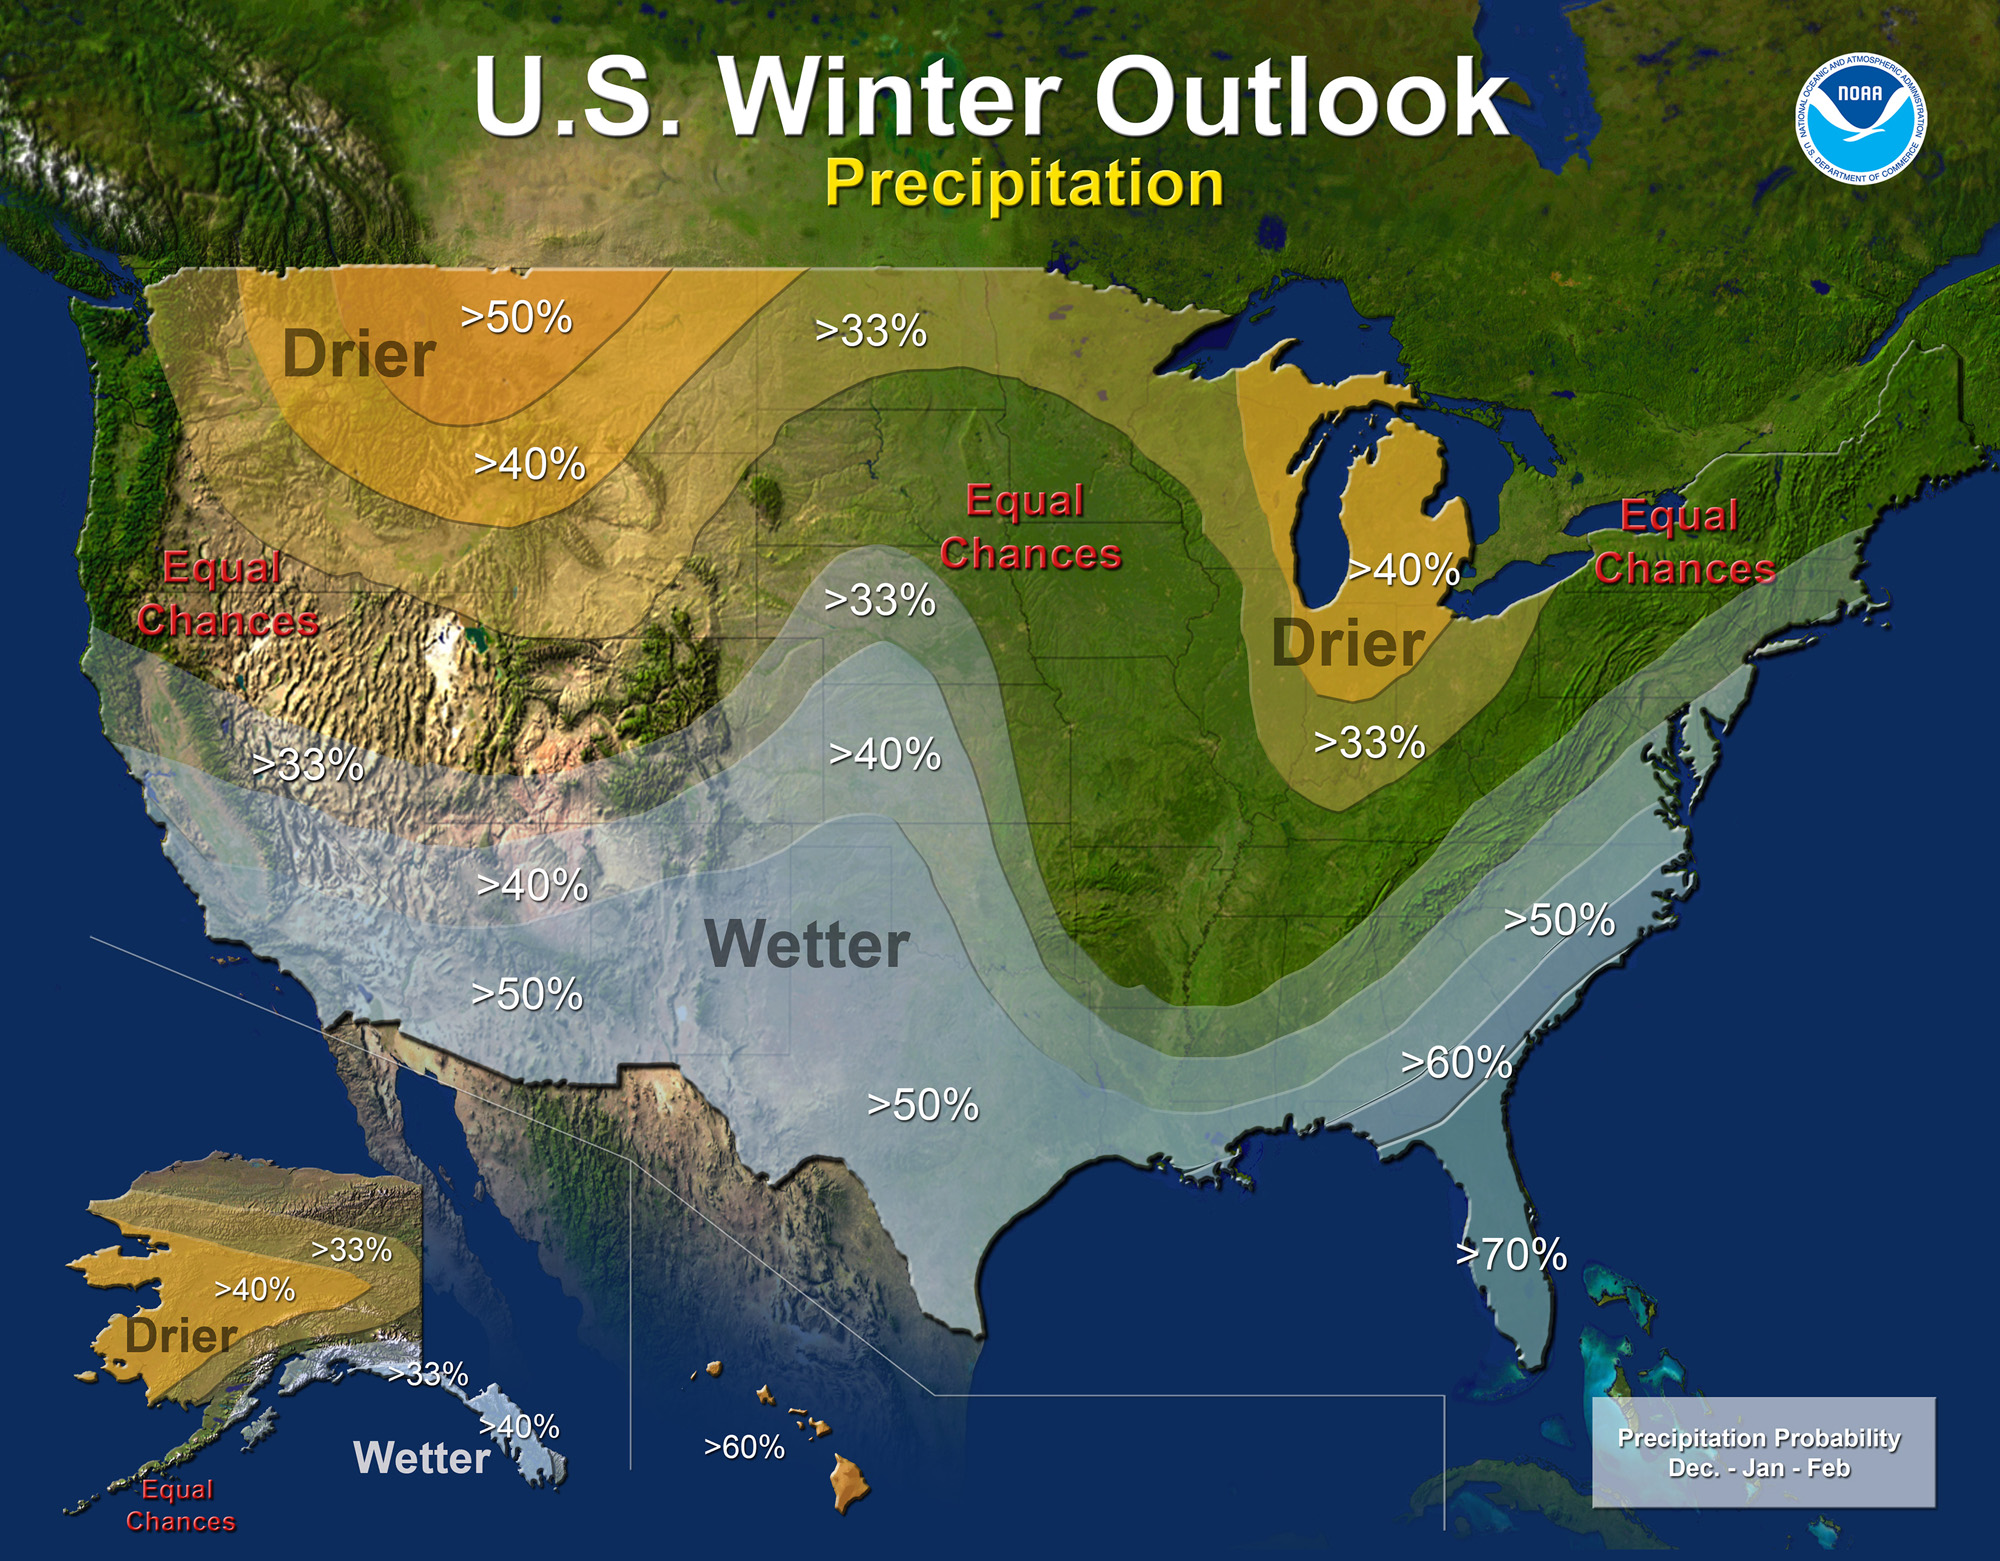 ElNino The Four Corners Area Is On The Northern Boundary Of The - Map of four corners area usa